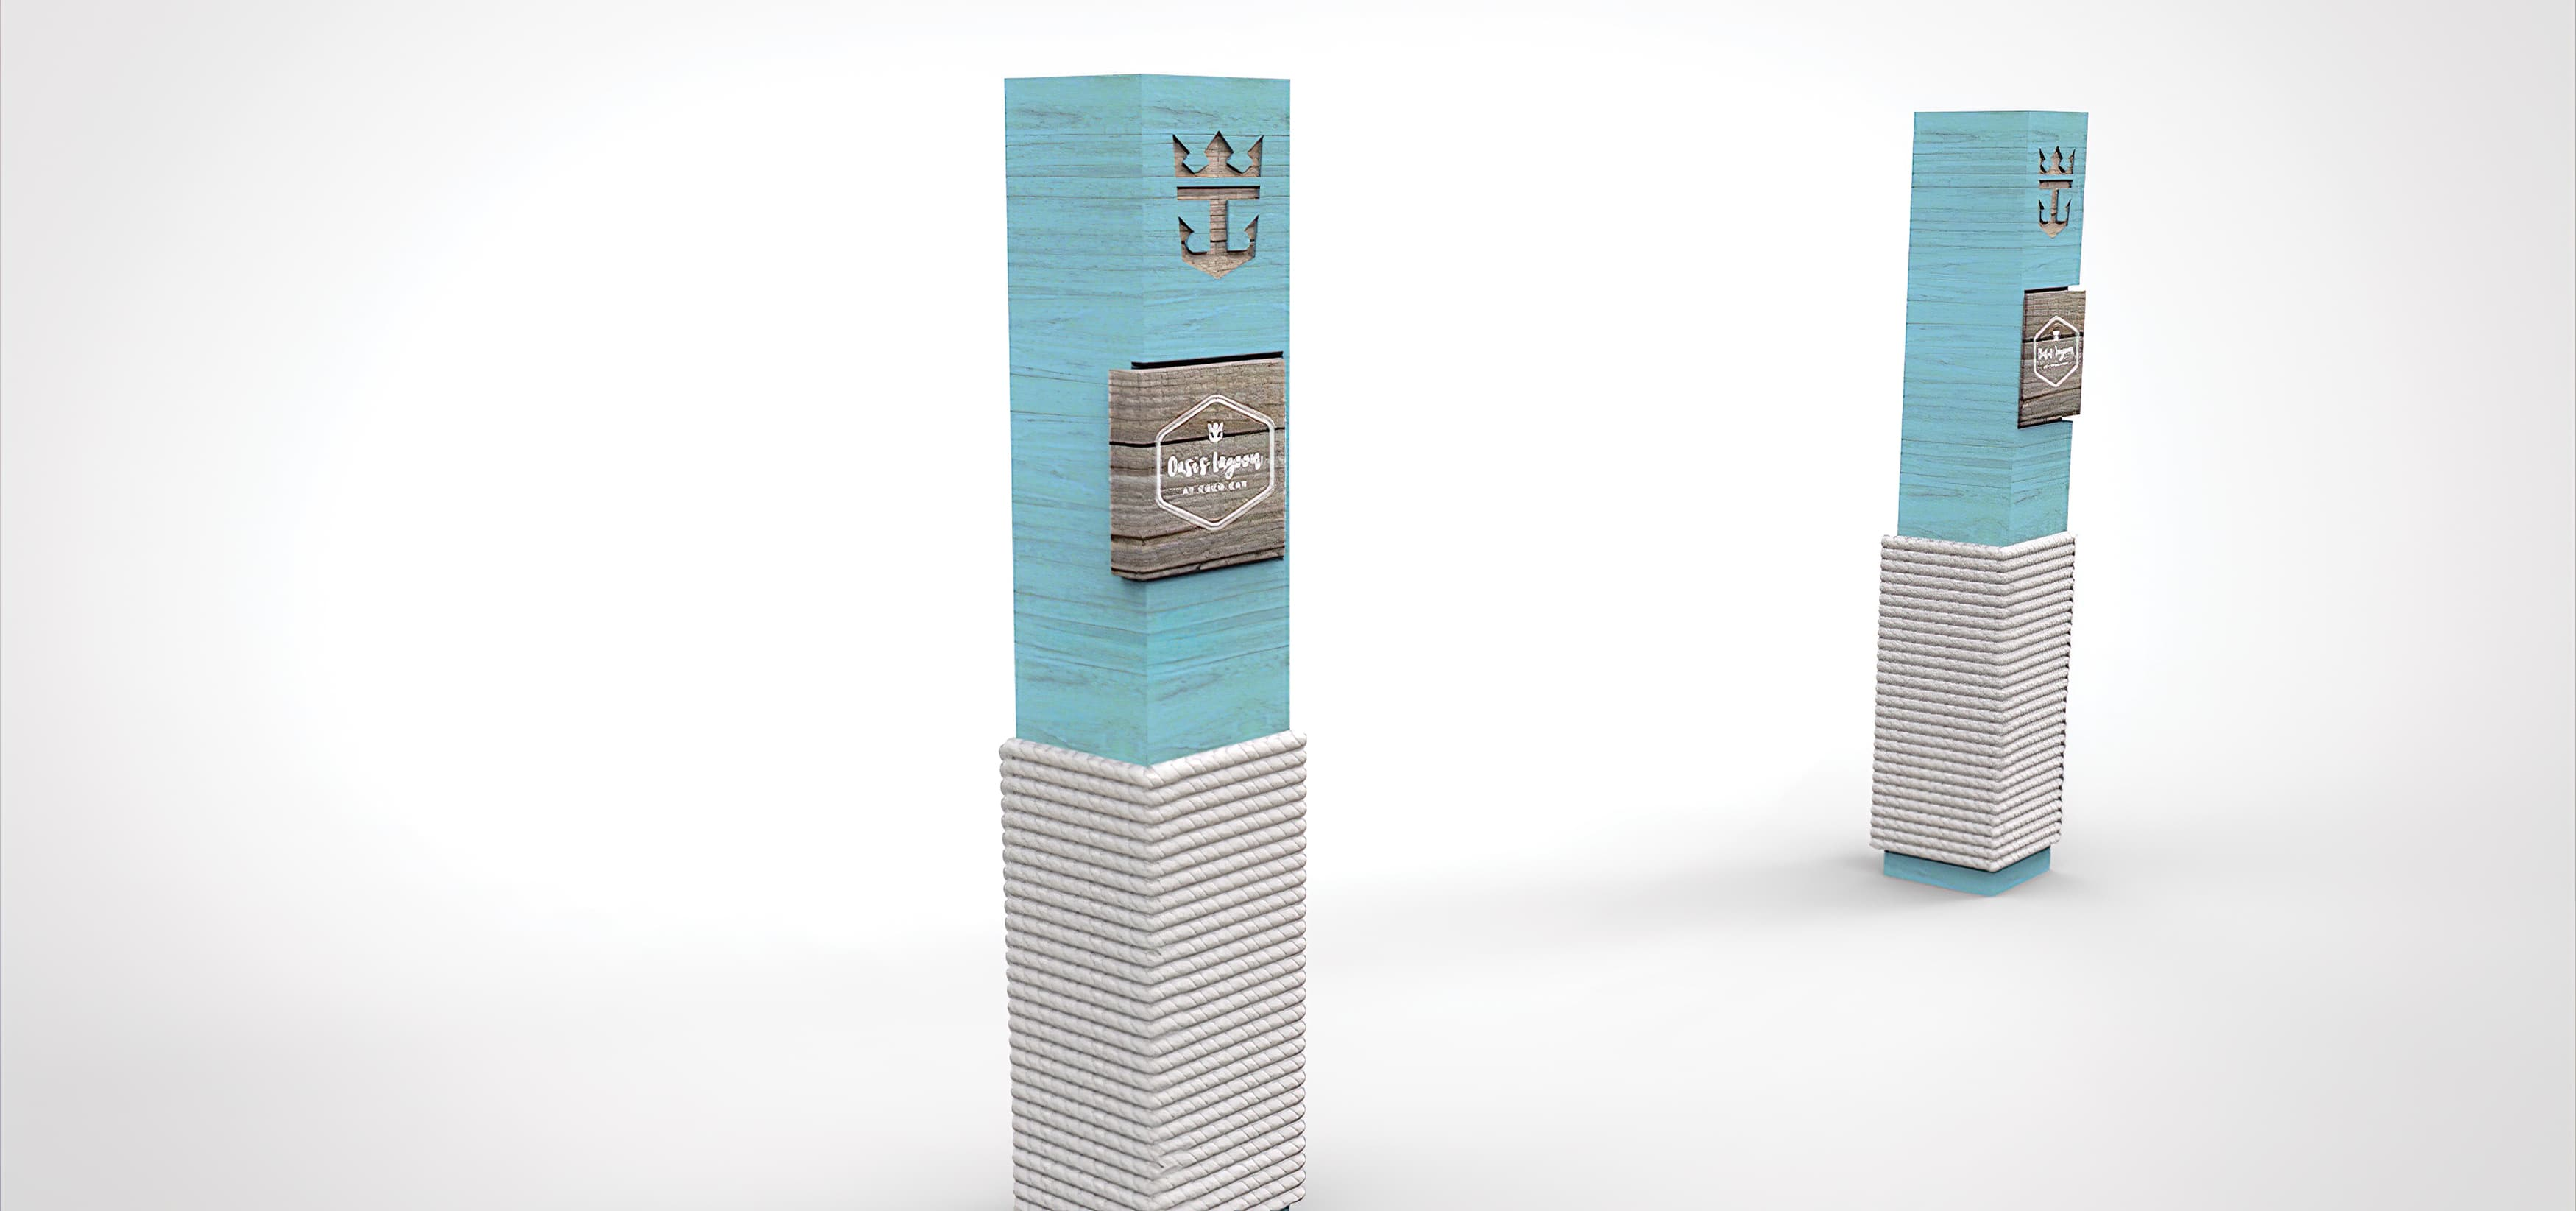 RSM Design developed a series of sculptural identity and wayfinding pieces for Coco Cay, an island in the Bahamas owned by Royal Caribbean.